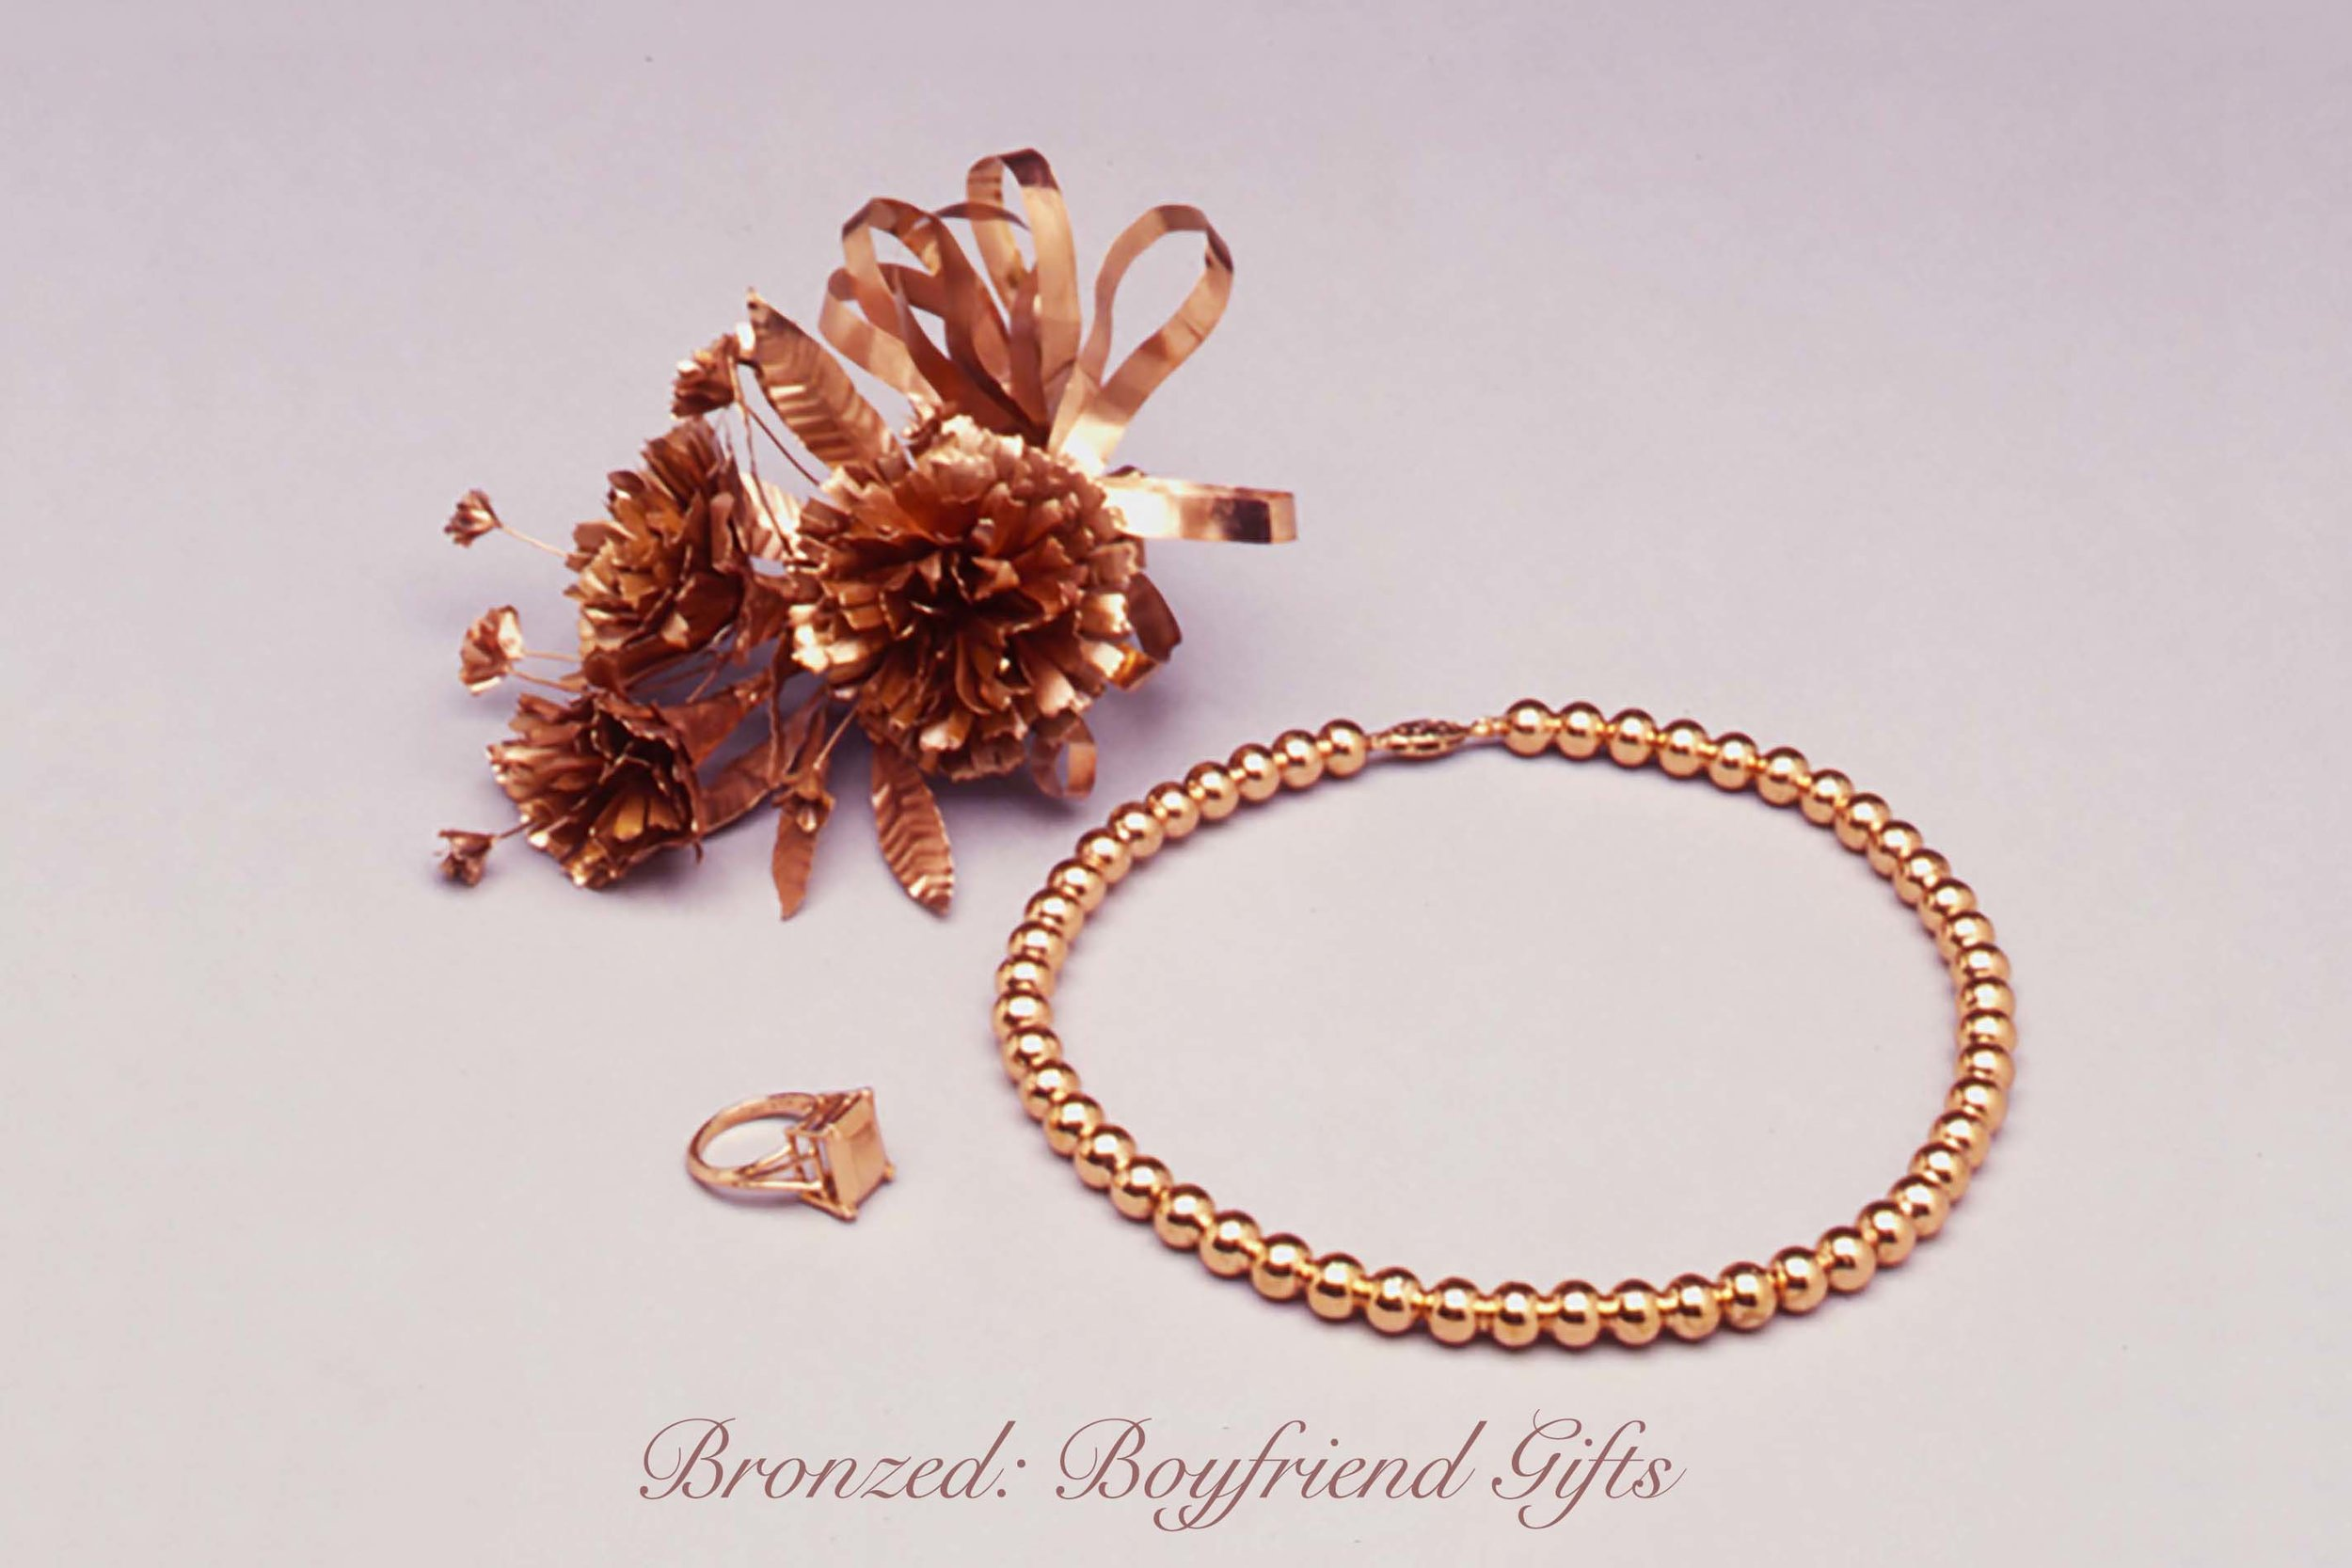 Bronzed-BoyfriendGifts-ps-txt.jpg